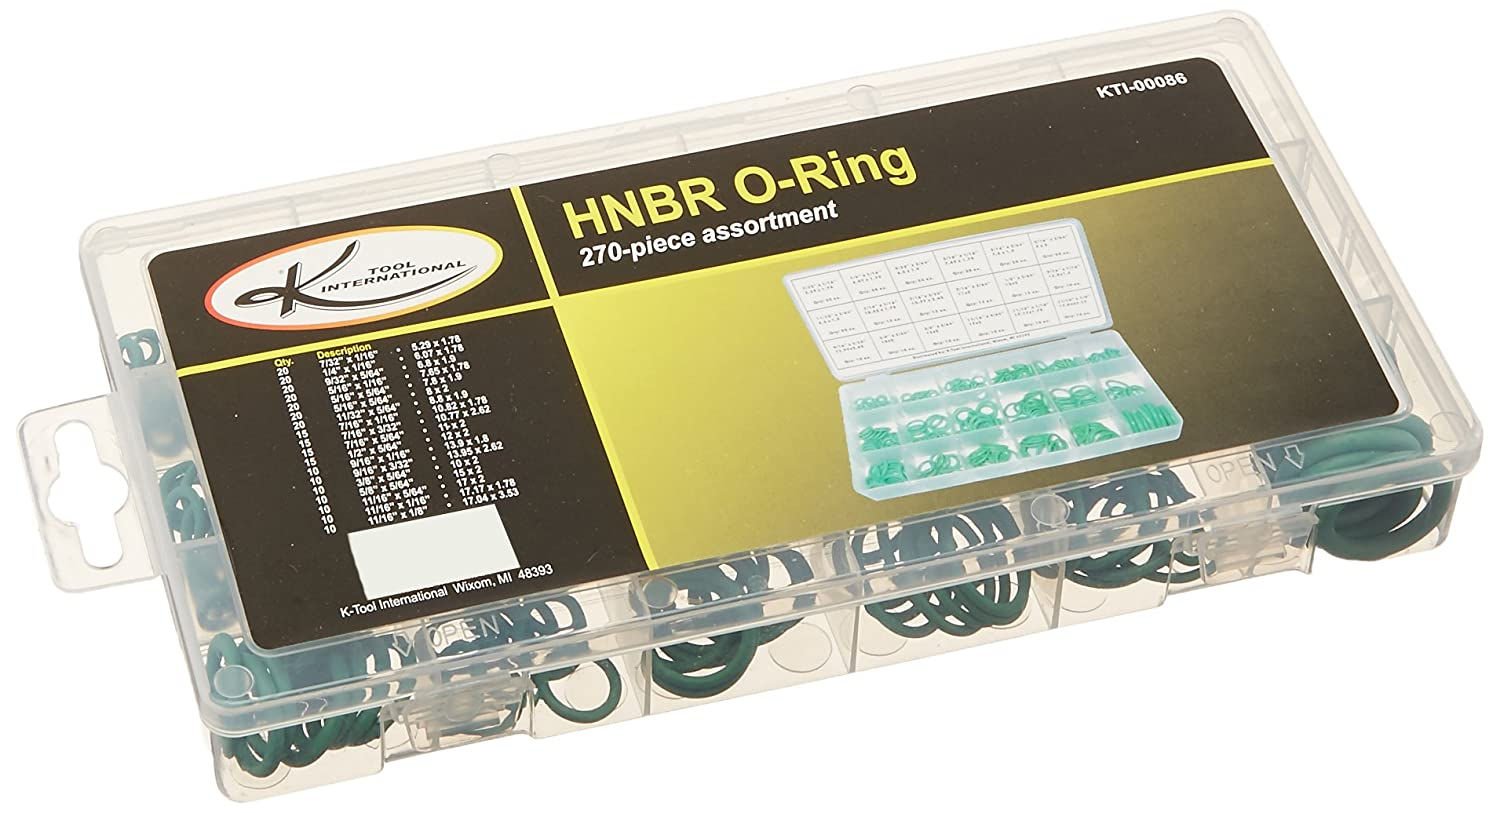 K-Tool Corporation 270 Piece HNBR O-Ring Assortment K Tool International KTI00086